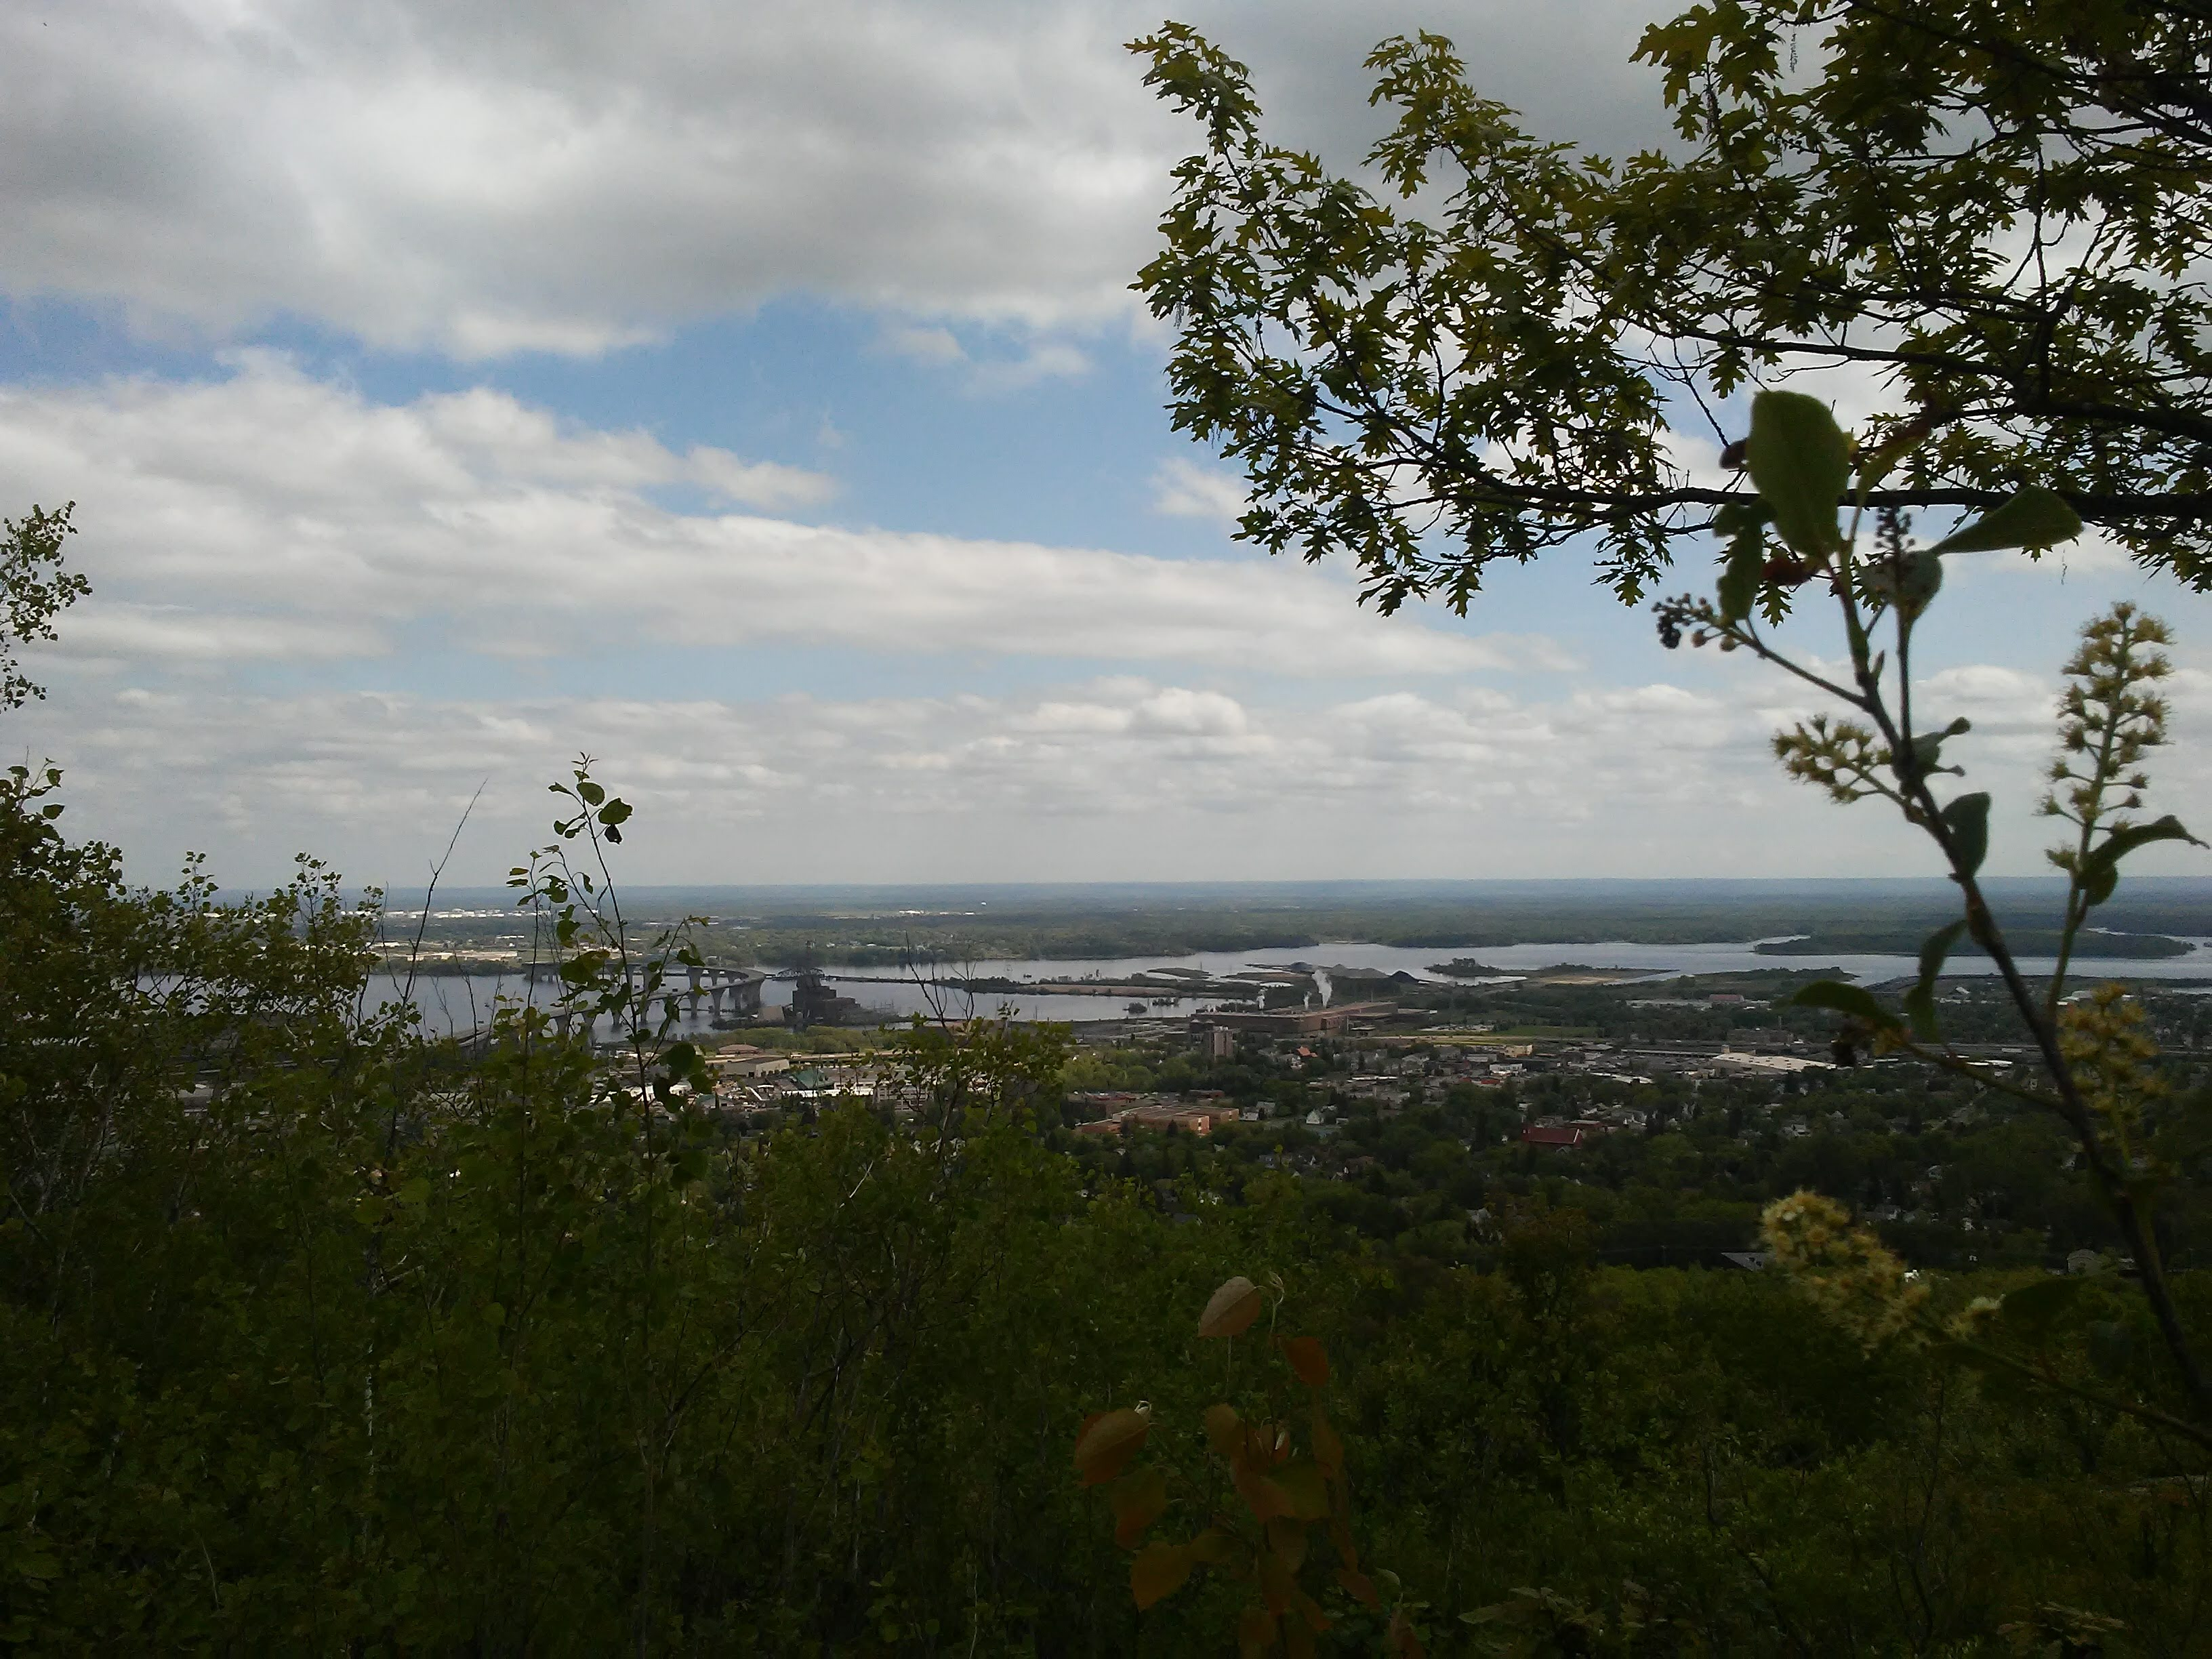 view of Duluth/Superior harbor with plants in the foreground